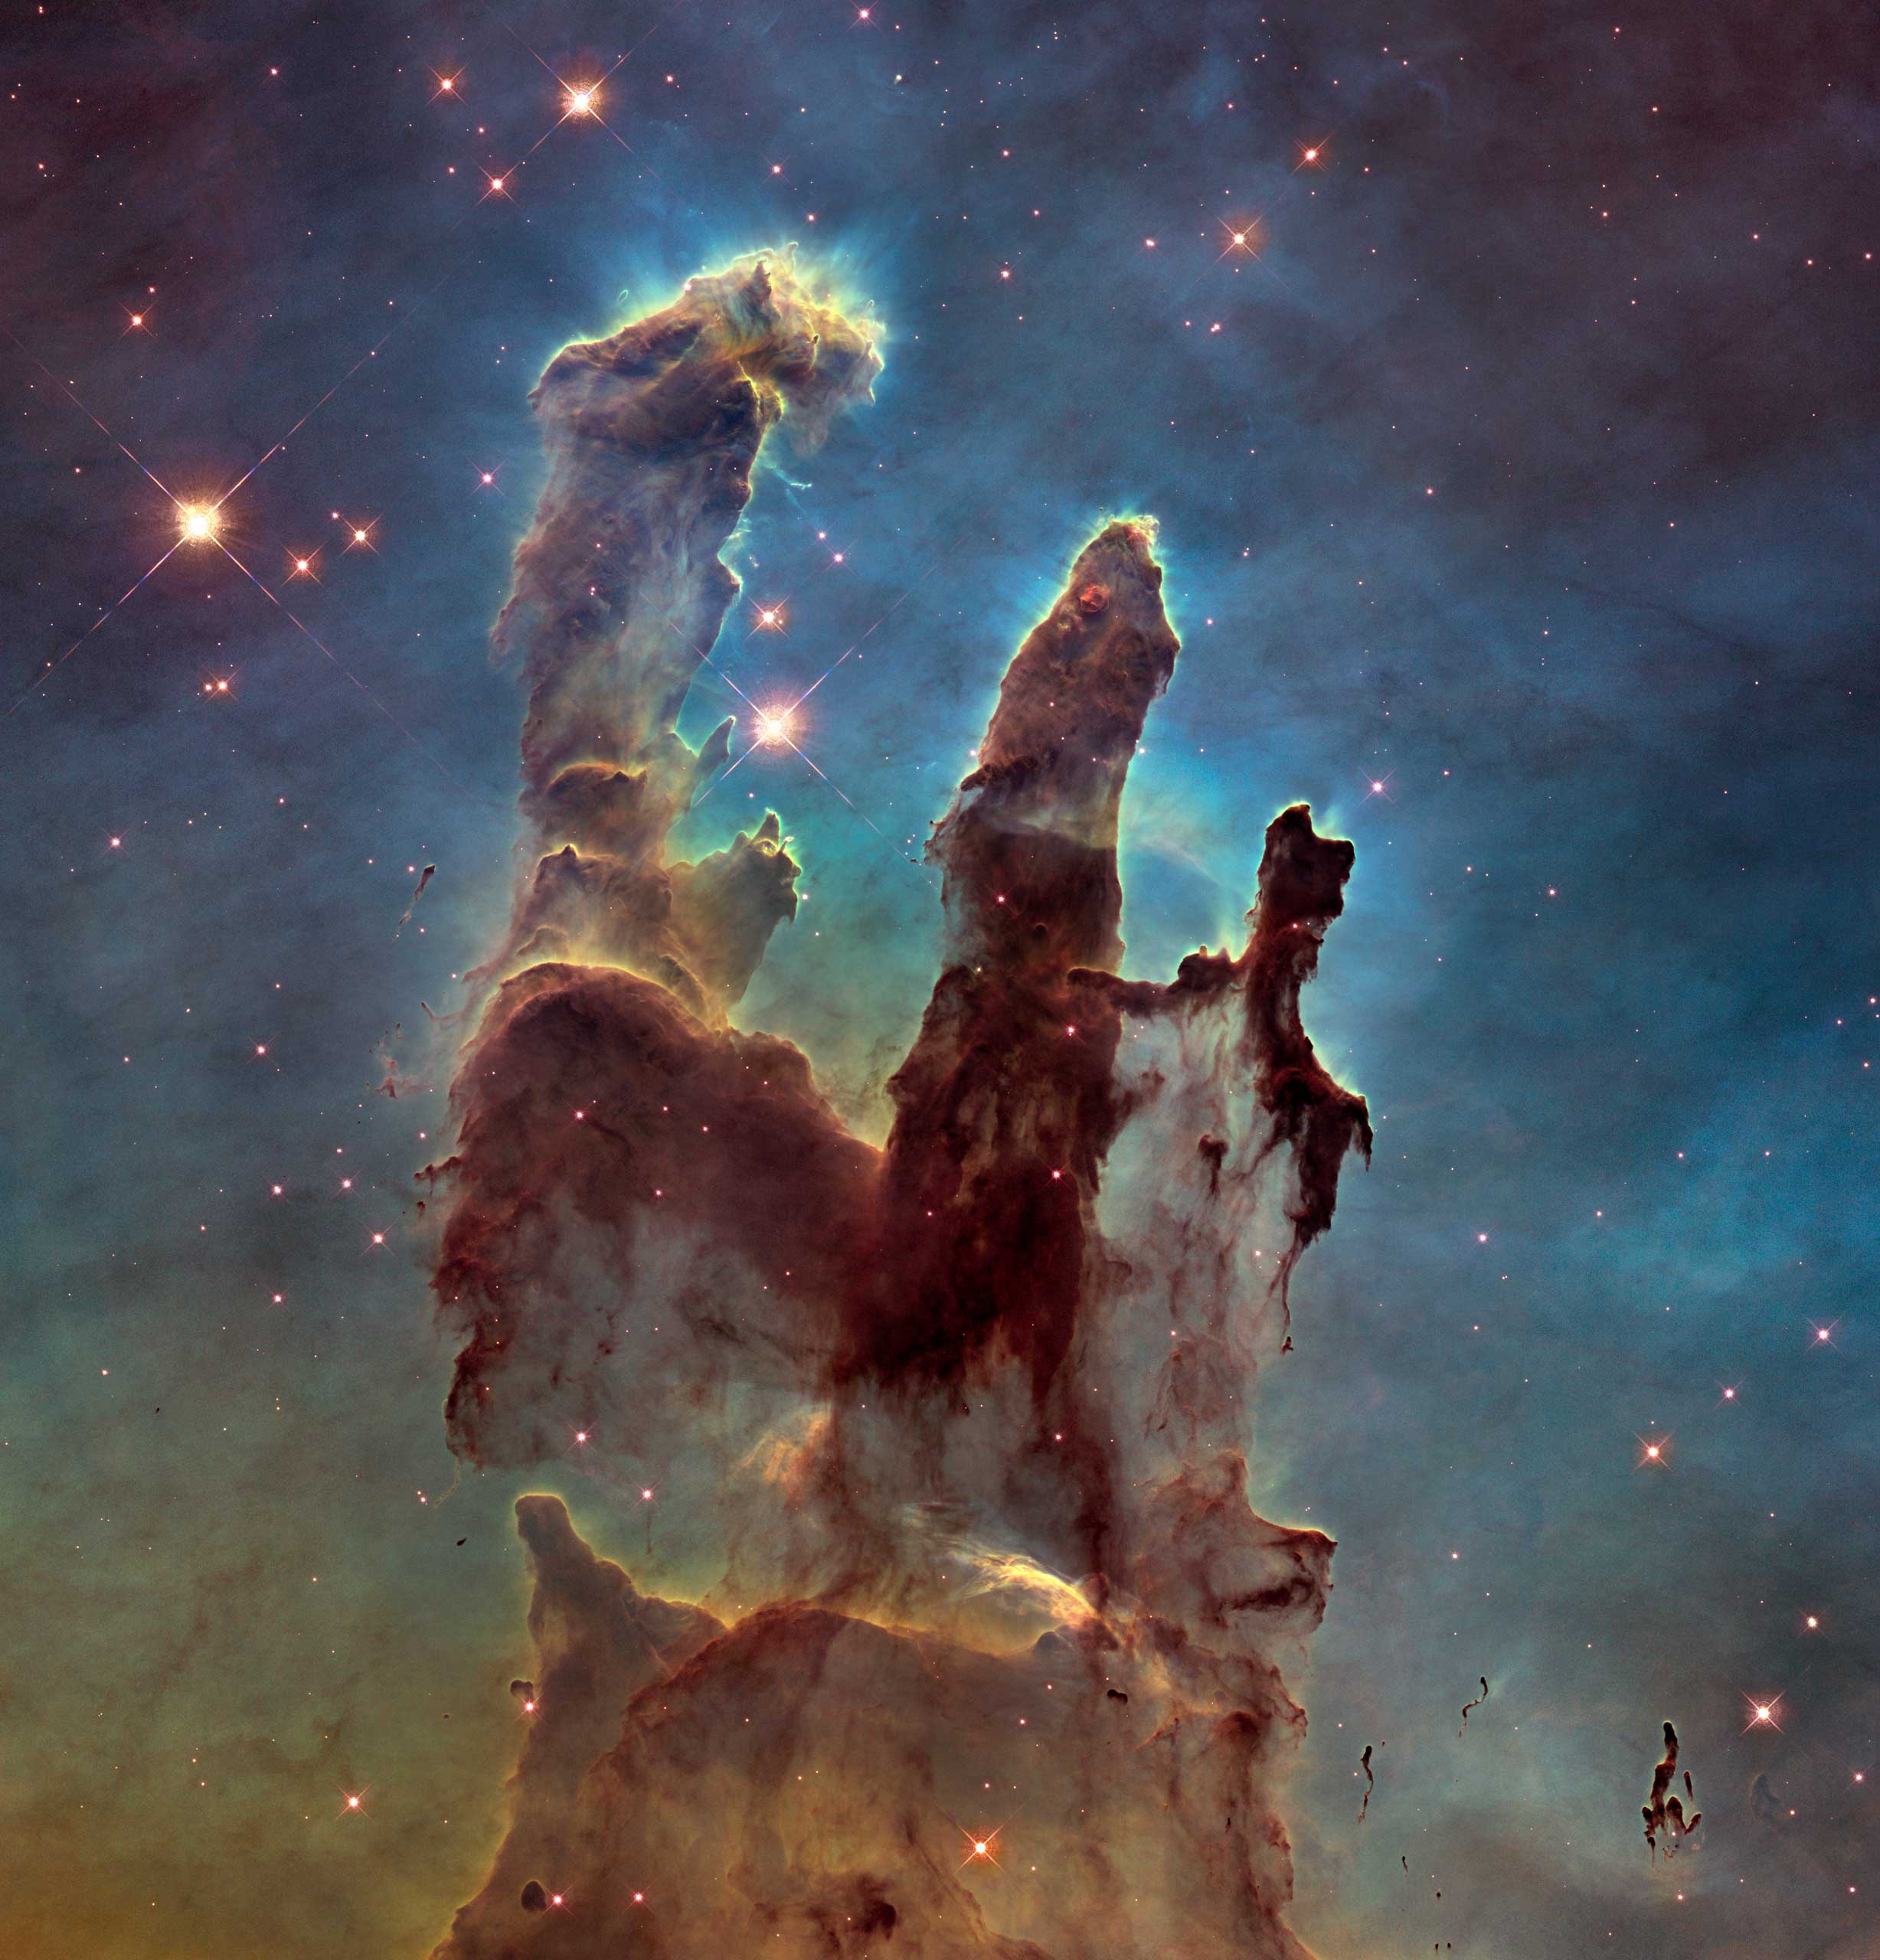 <strong>Pillars of Creation</strong>: Originally taken on April 1, 1995, this image has become one of the most iconic to come from the Hubble Telescope. This version, released in 2015, shows a higher resolution image of the region. The pillars are part of a small region of the Eagle Nebula, a vast star-forming region 6,500 light-years from Earth.                                   <i>Image released in Jan. 2015</i>